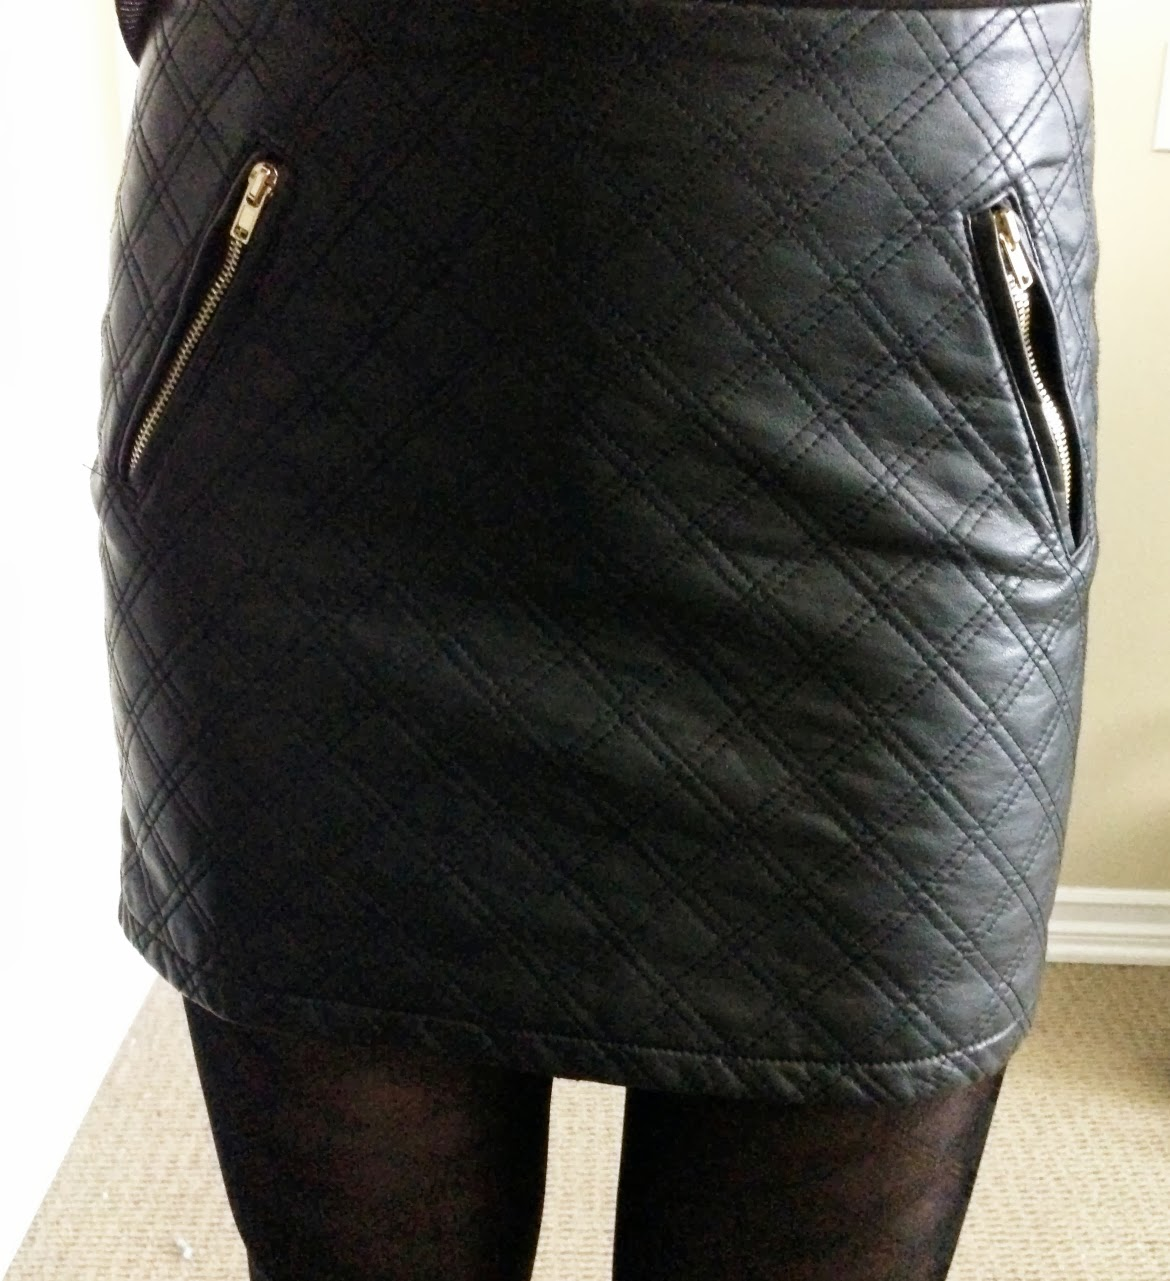 My Superficial Endeavors: Express (Minus the) Leather Quilted Mini ... : quilted leather skirt - Adamdwight.com